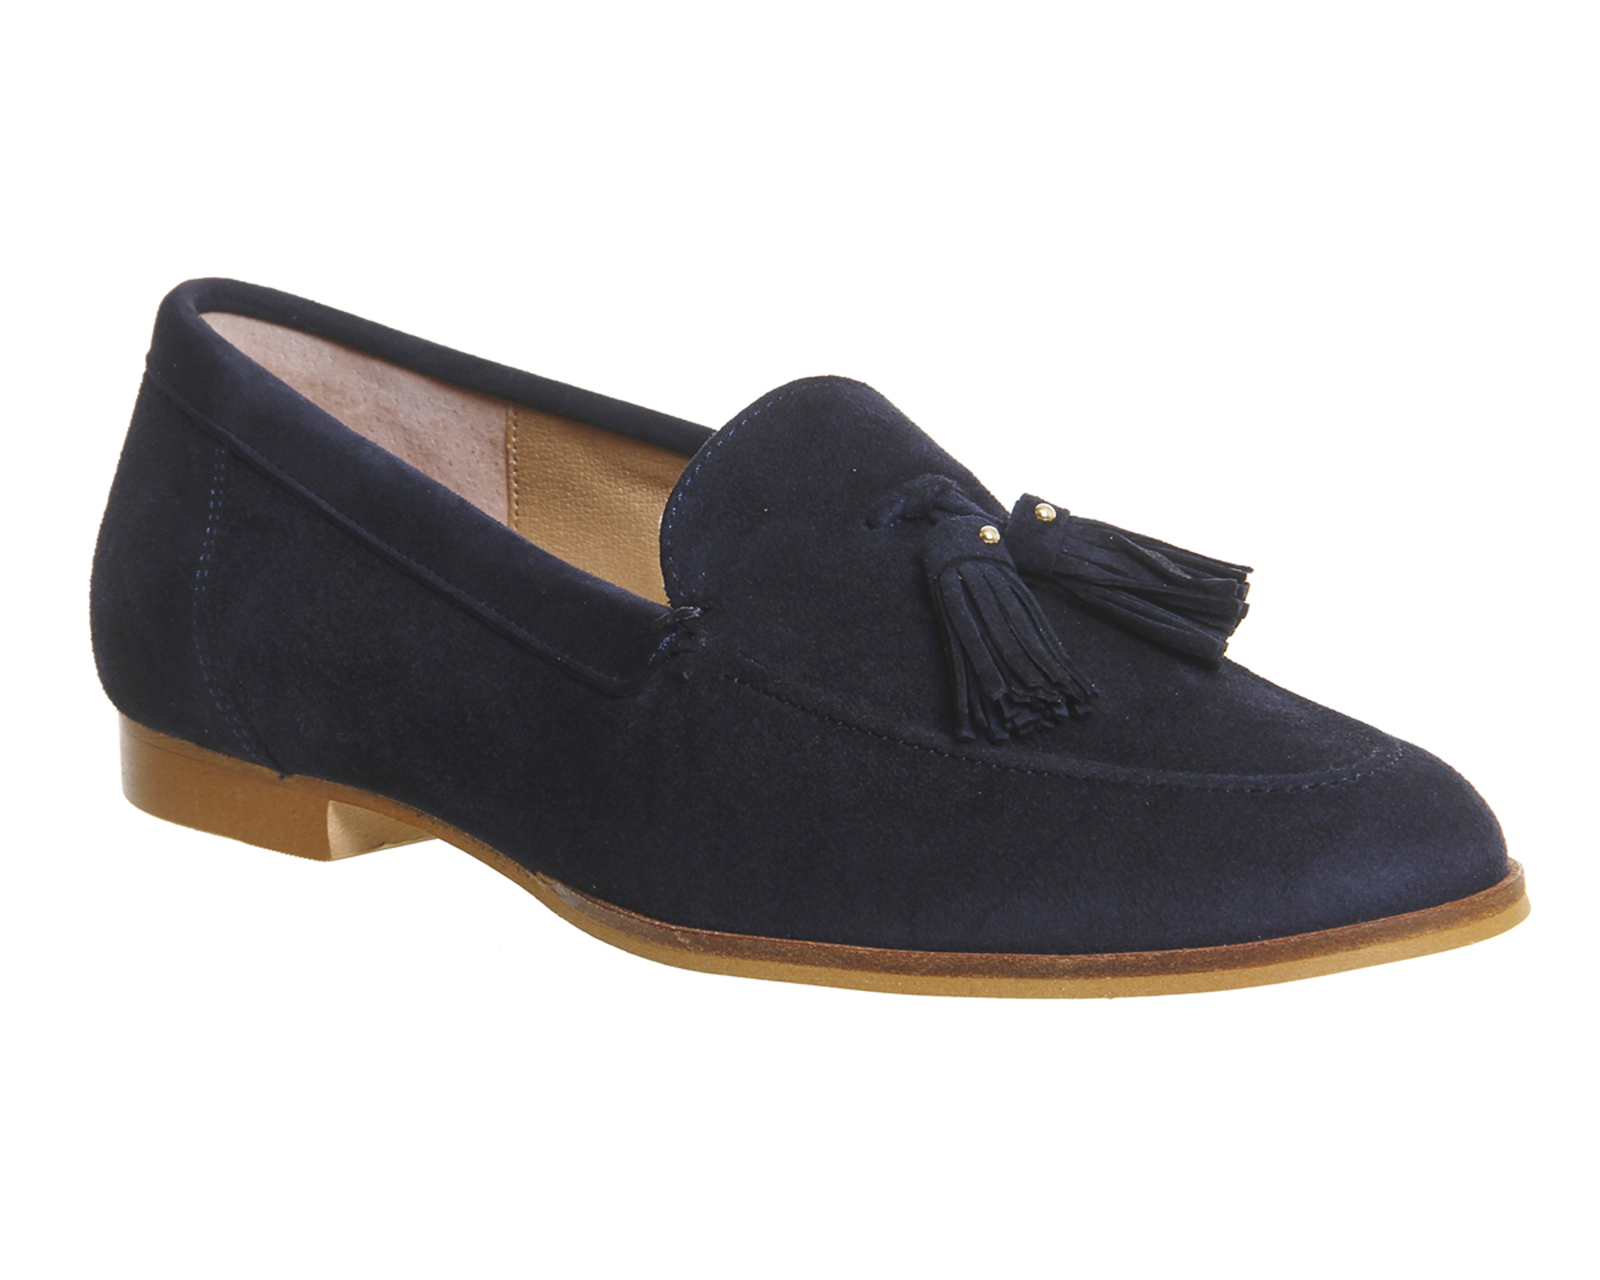 Women's Loafers: Free Shipping on orders over $45 at Find the latest styles of Shoes from europegamexma.gq Your Online Women's Shoes Store! Get 5% in rewards with Club O! Coupon Activated! Journee Collection Women's 'Larue' Faux Suede Fringed Loafers. 23 Reviews. Quick View $